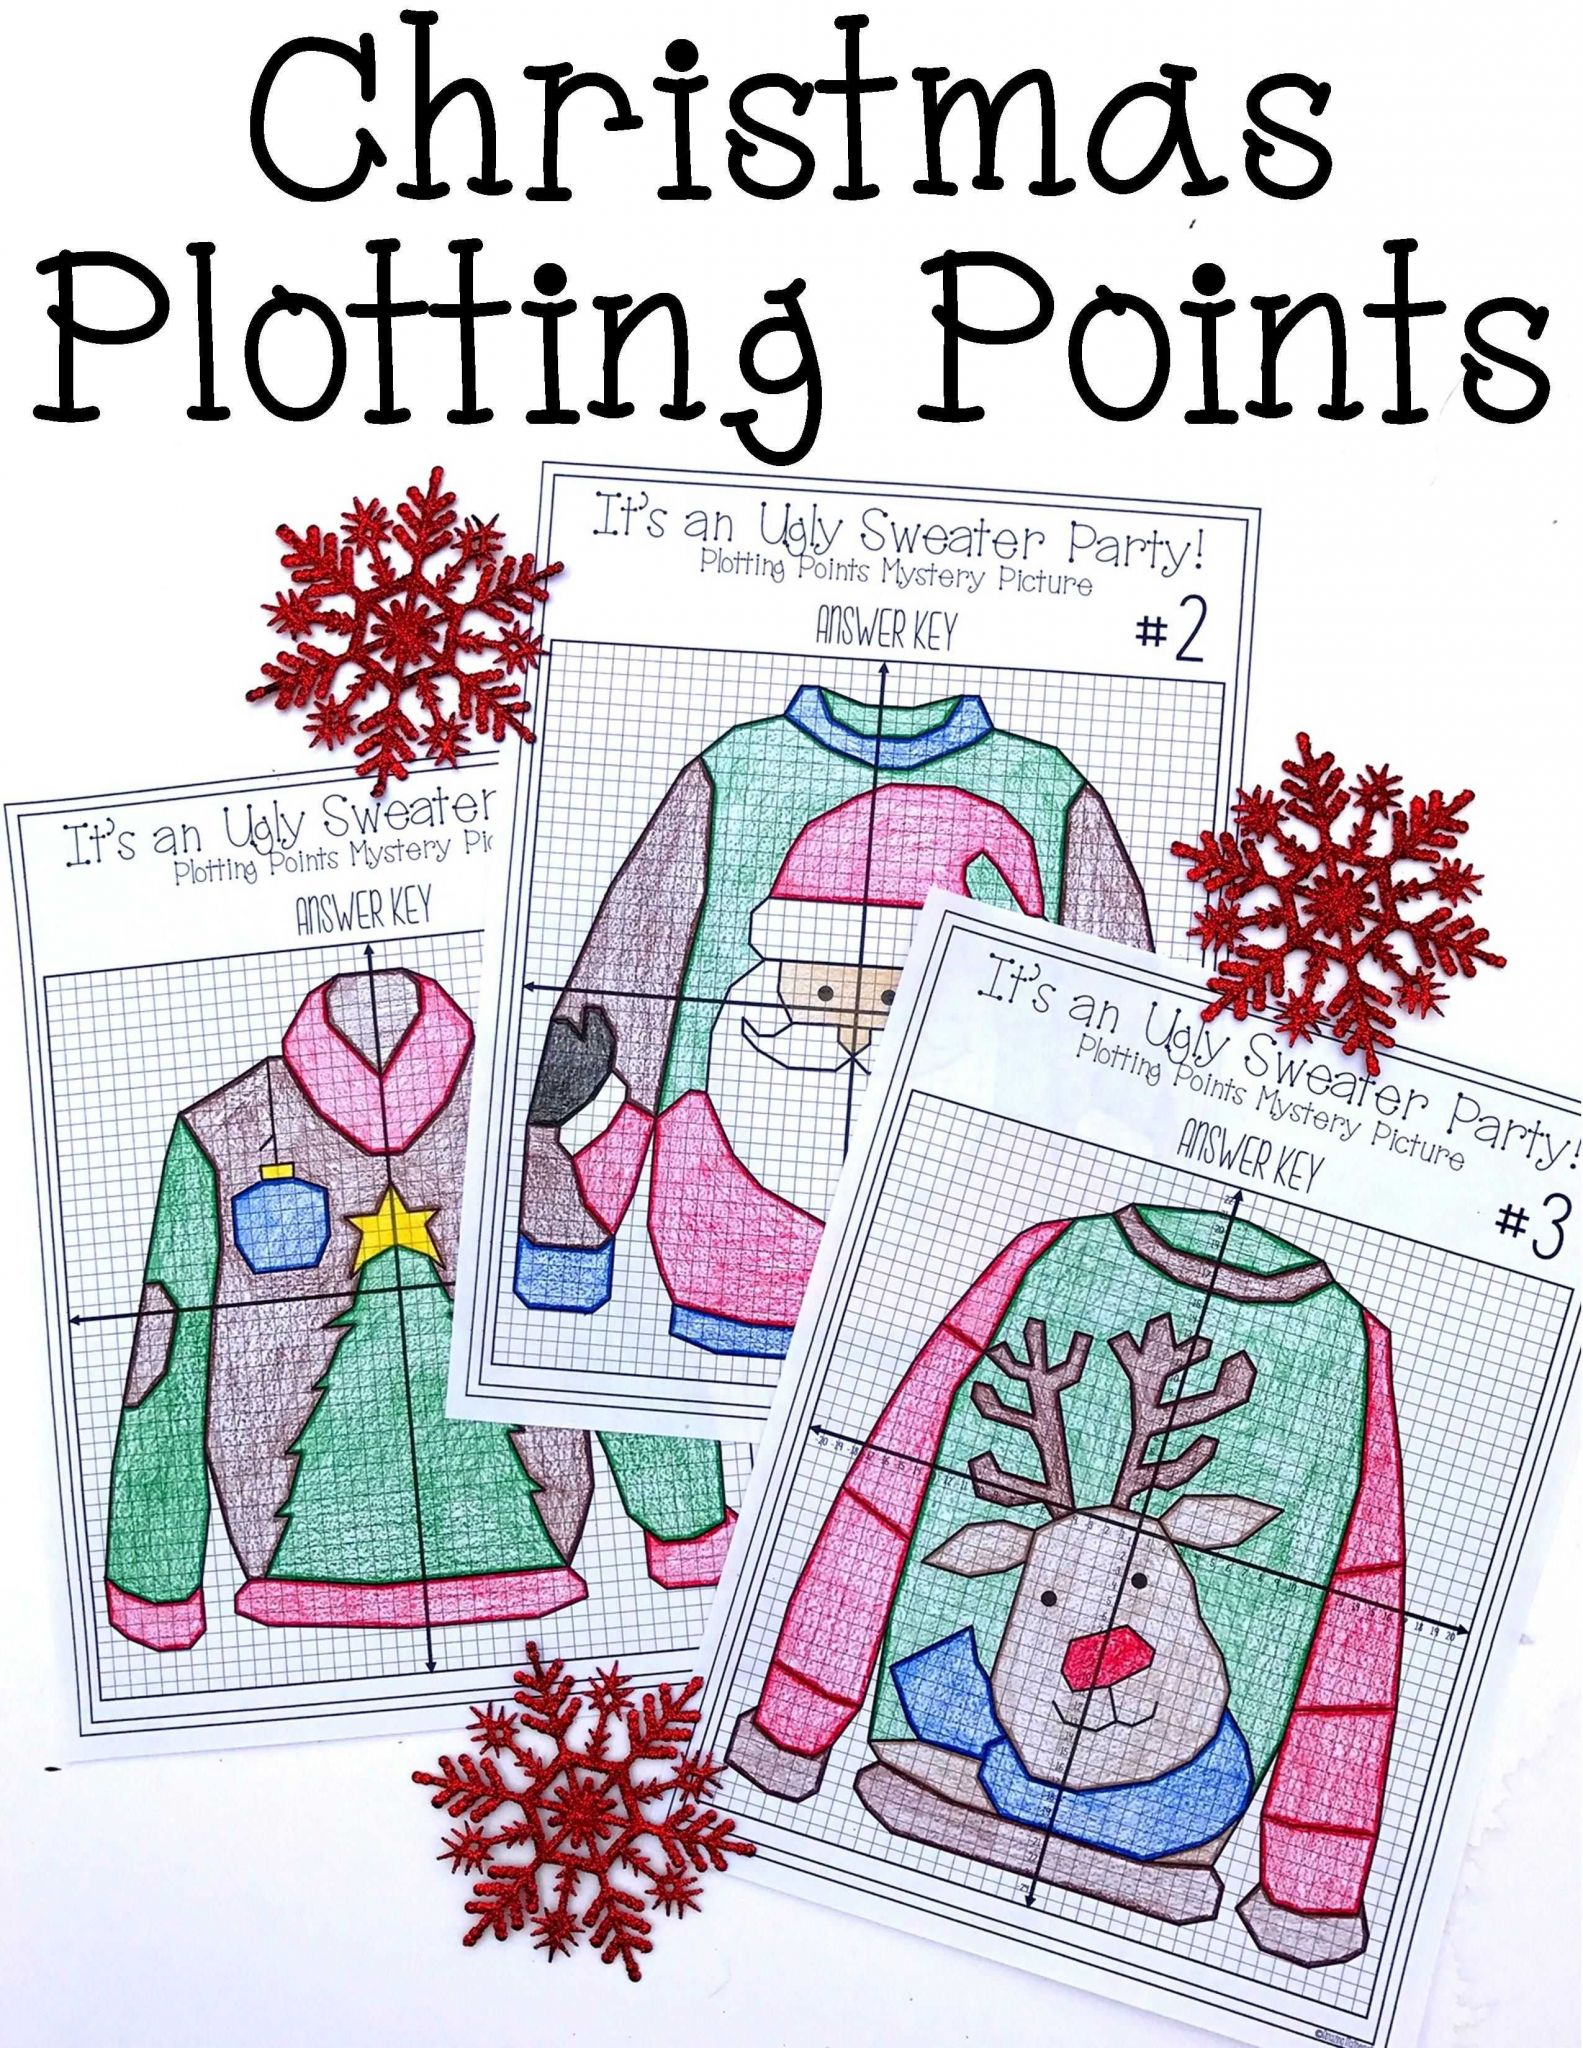 Secrets Of the Mind Worksheet Answers as Well as Christmas Math Activity Ugly Sweaters Plotting Points Mystery